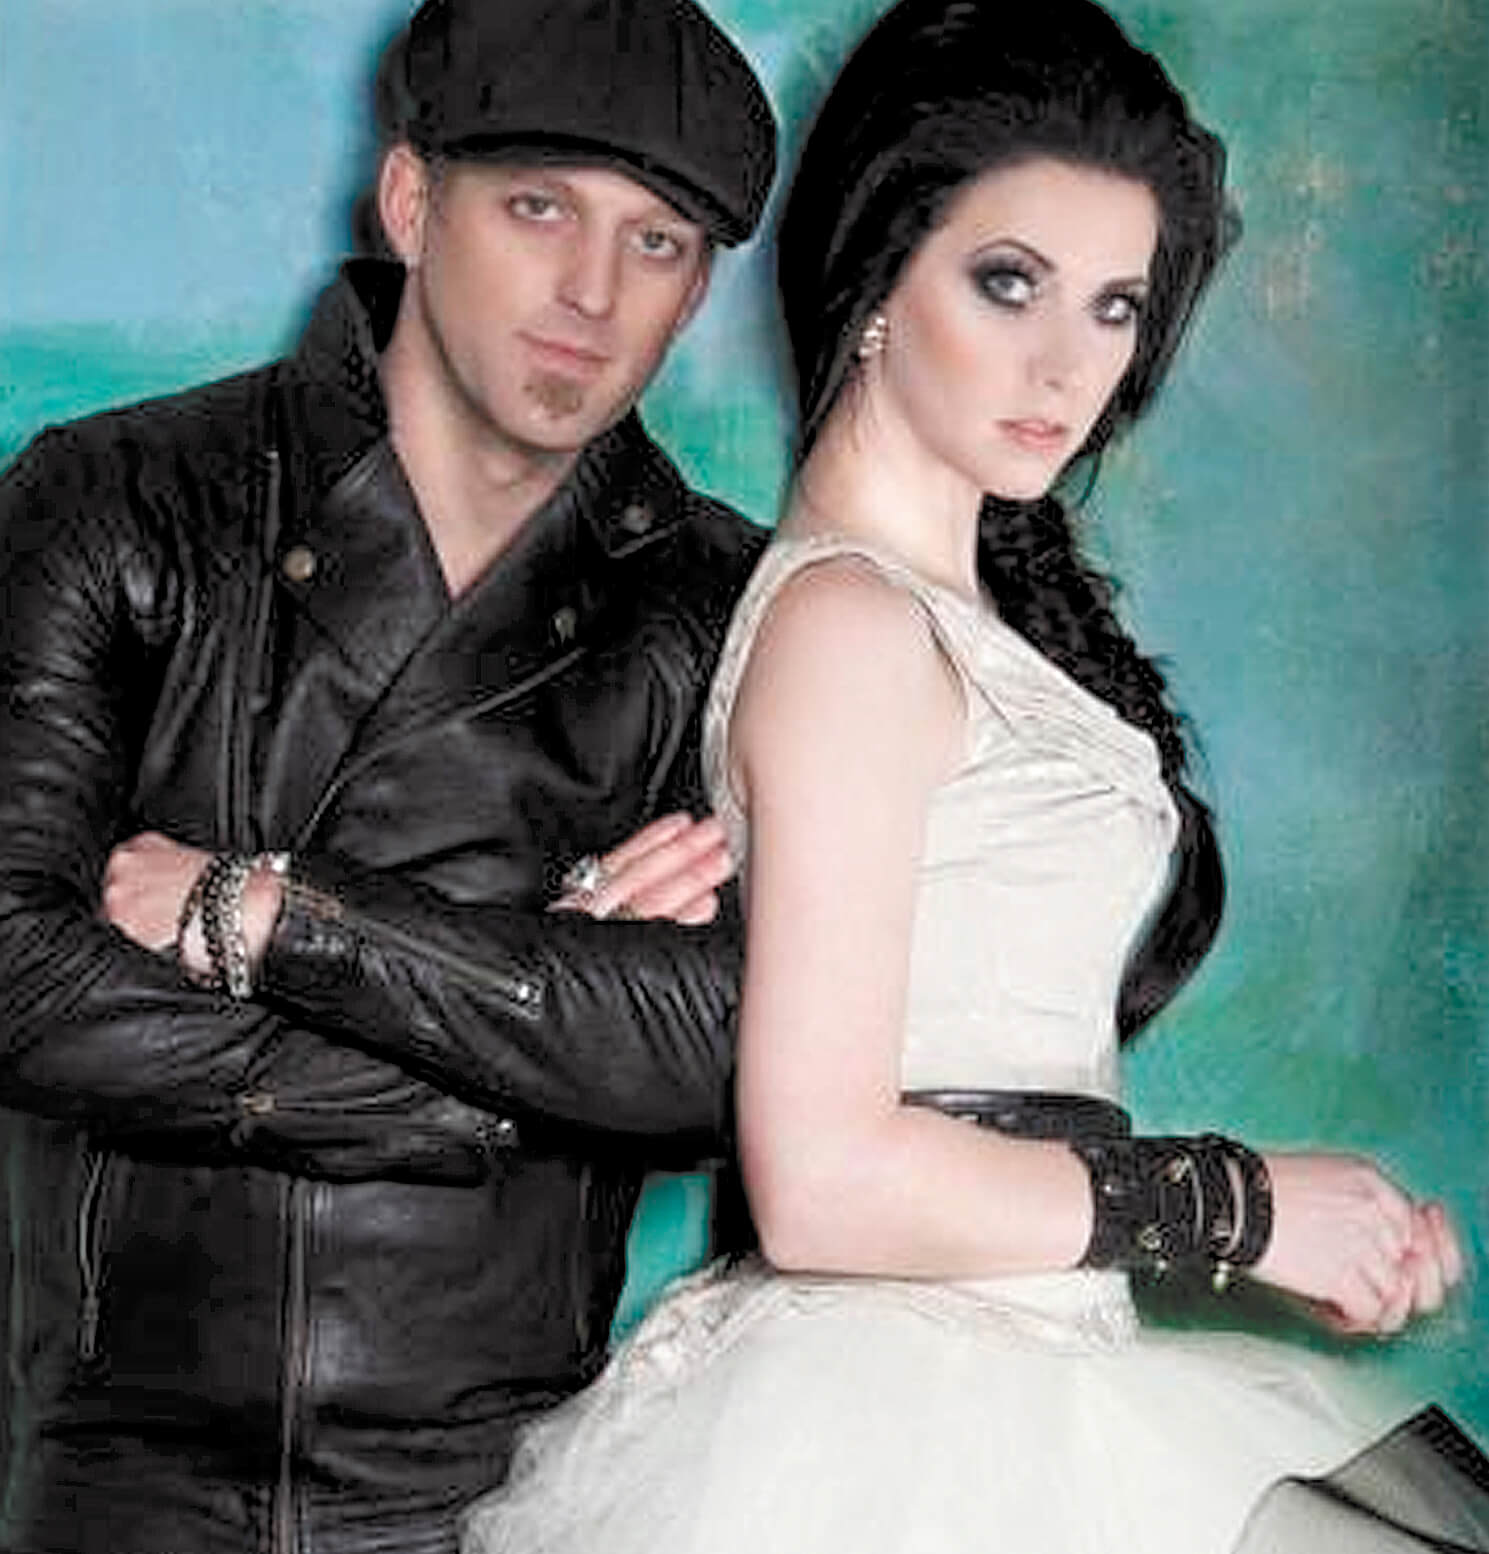 Thompson Square carving a path in close quarters